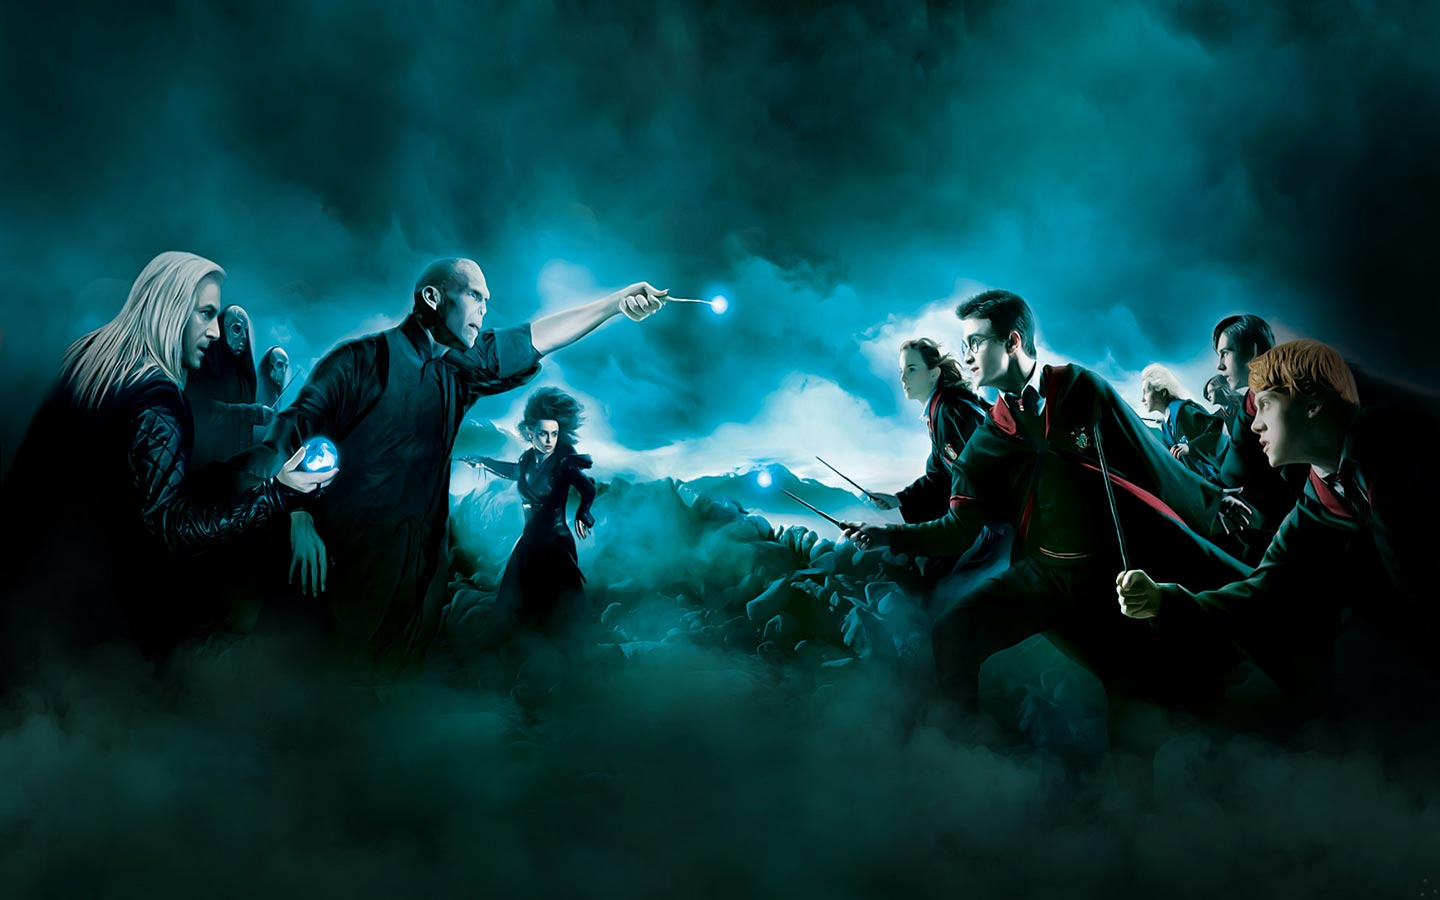 Harry Potter Wallpapers Hd: Pic New Posts: Wallpaper Hd Widescreen Harry Potter